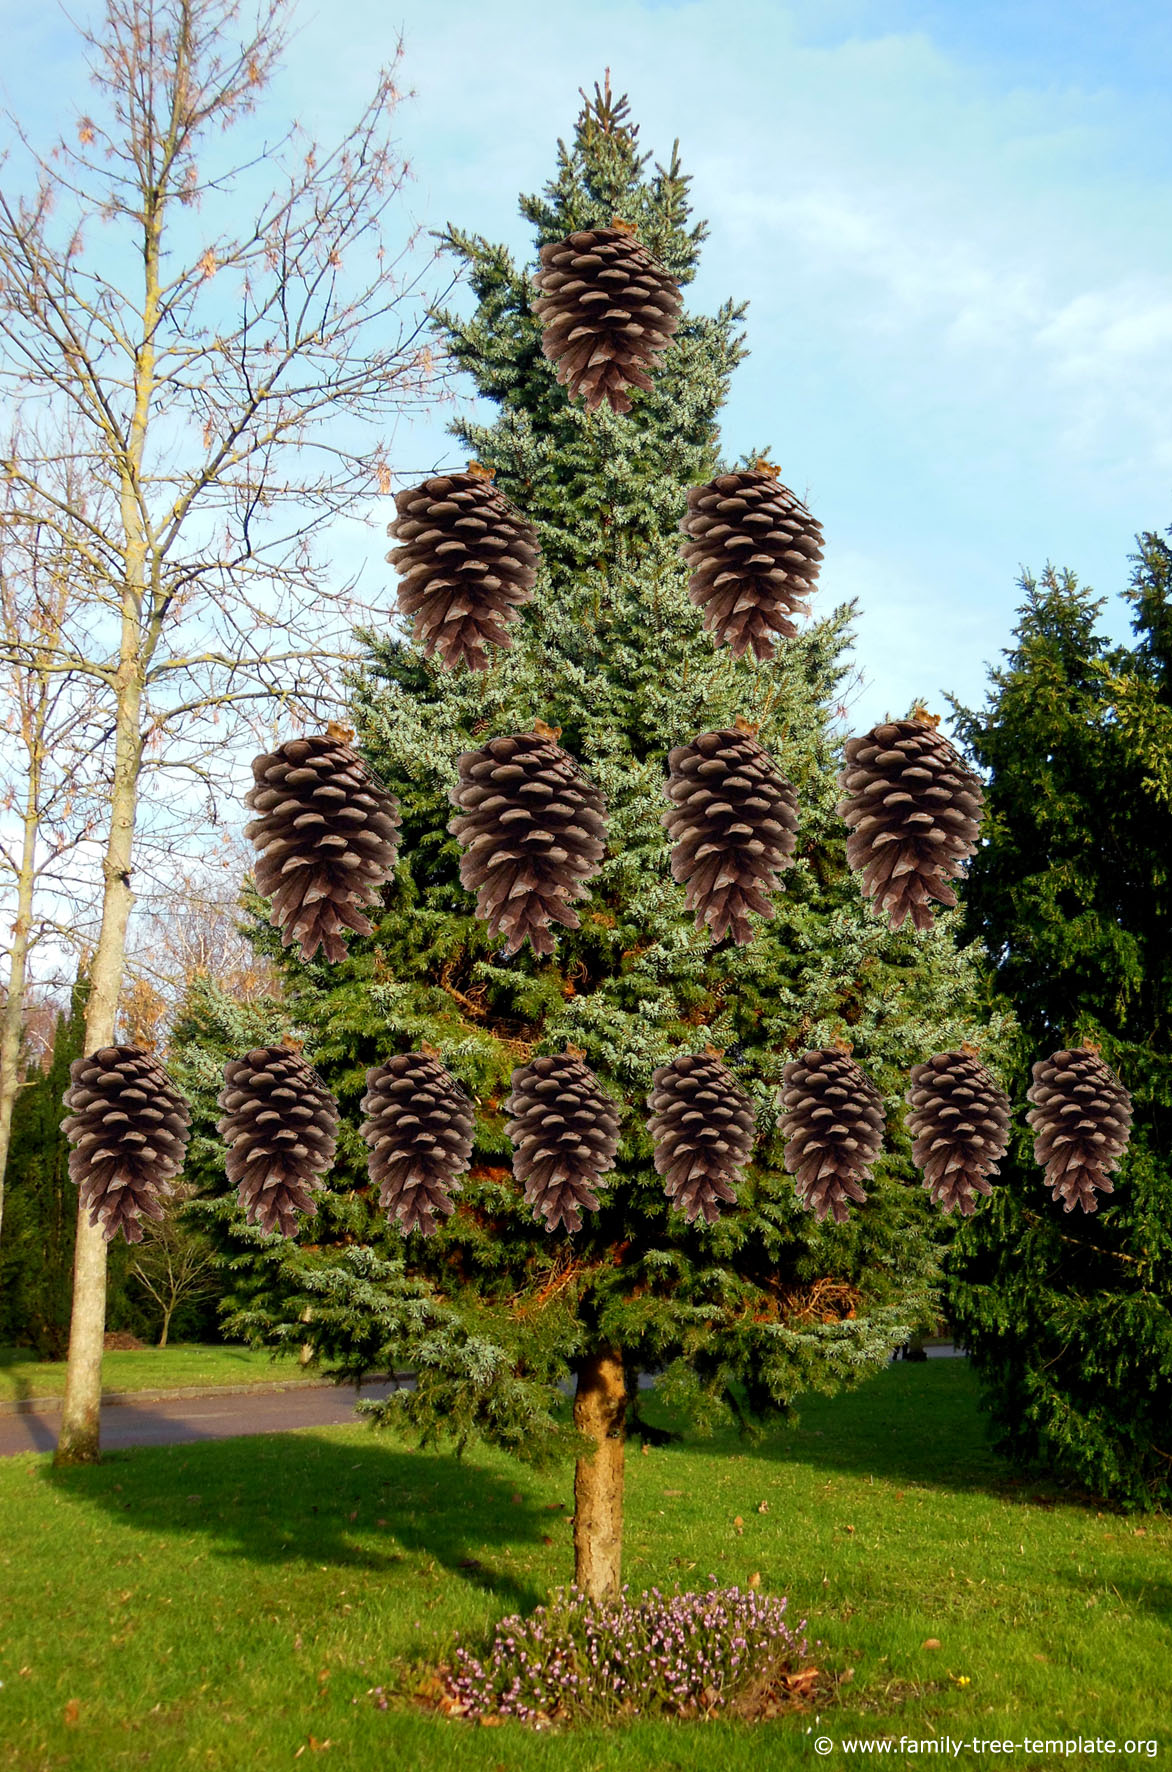 Fun printable free family tree template for kids with pine cones as relatives.